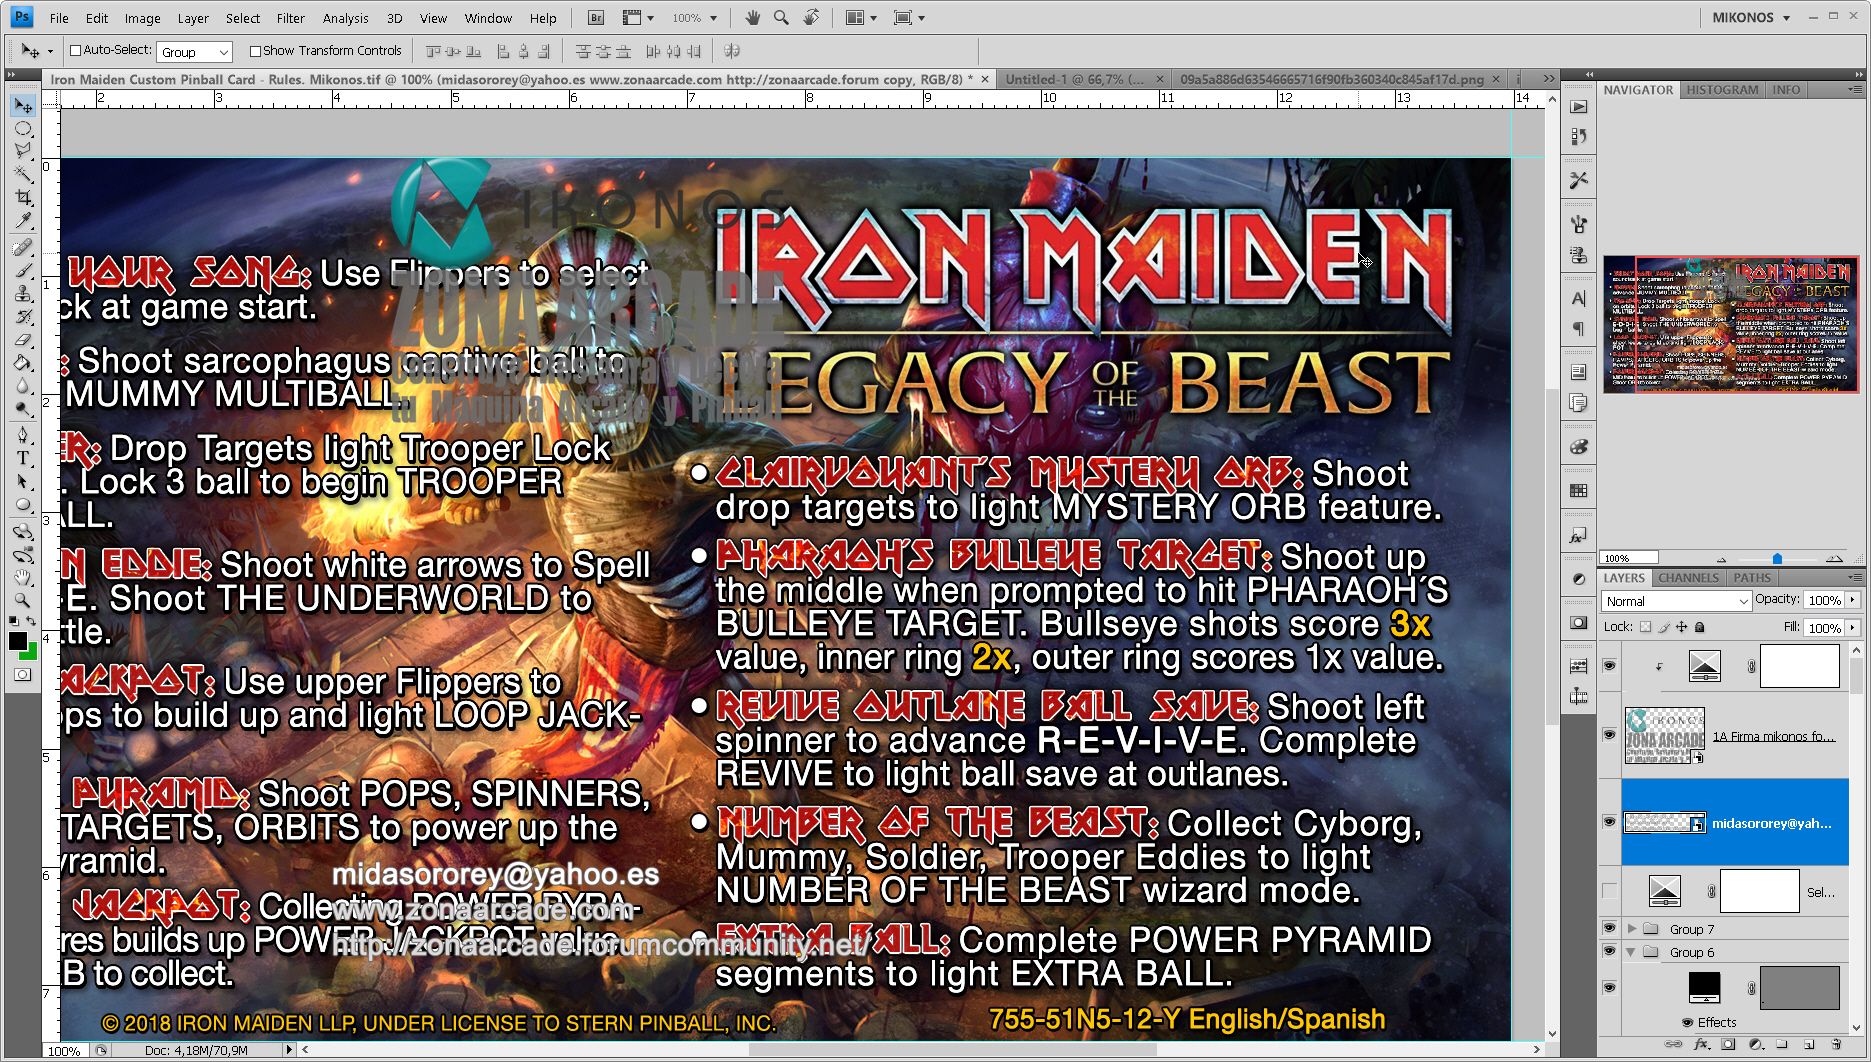 Iron Maiden Legacy of the Beast Pinball Cards Customized